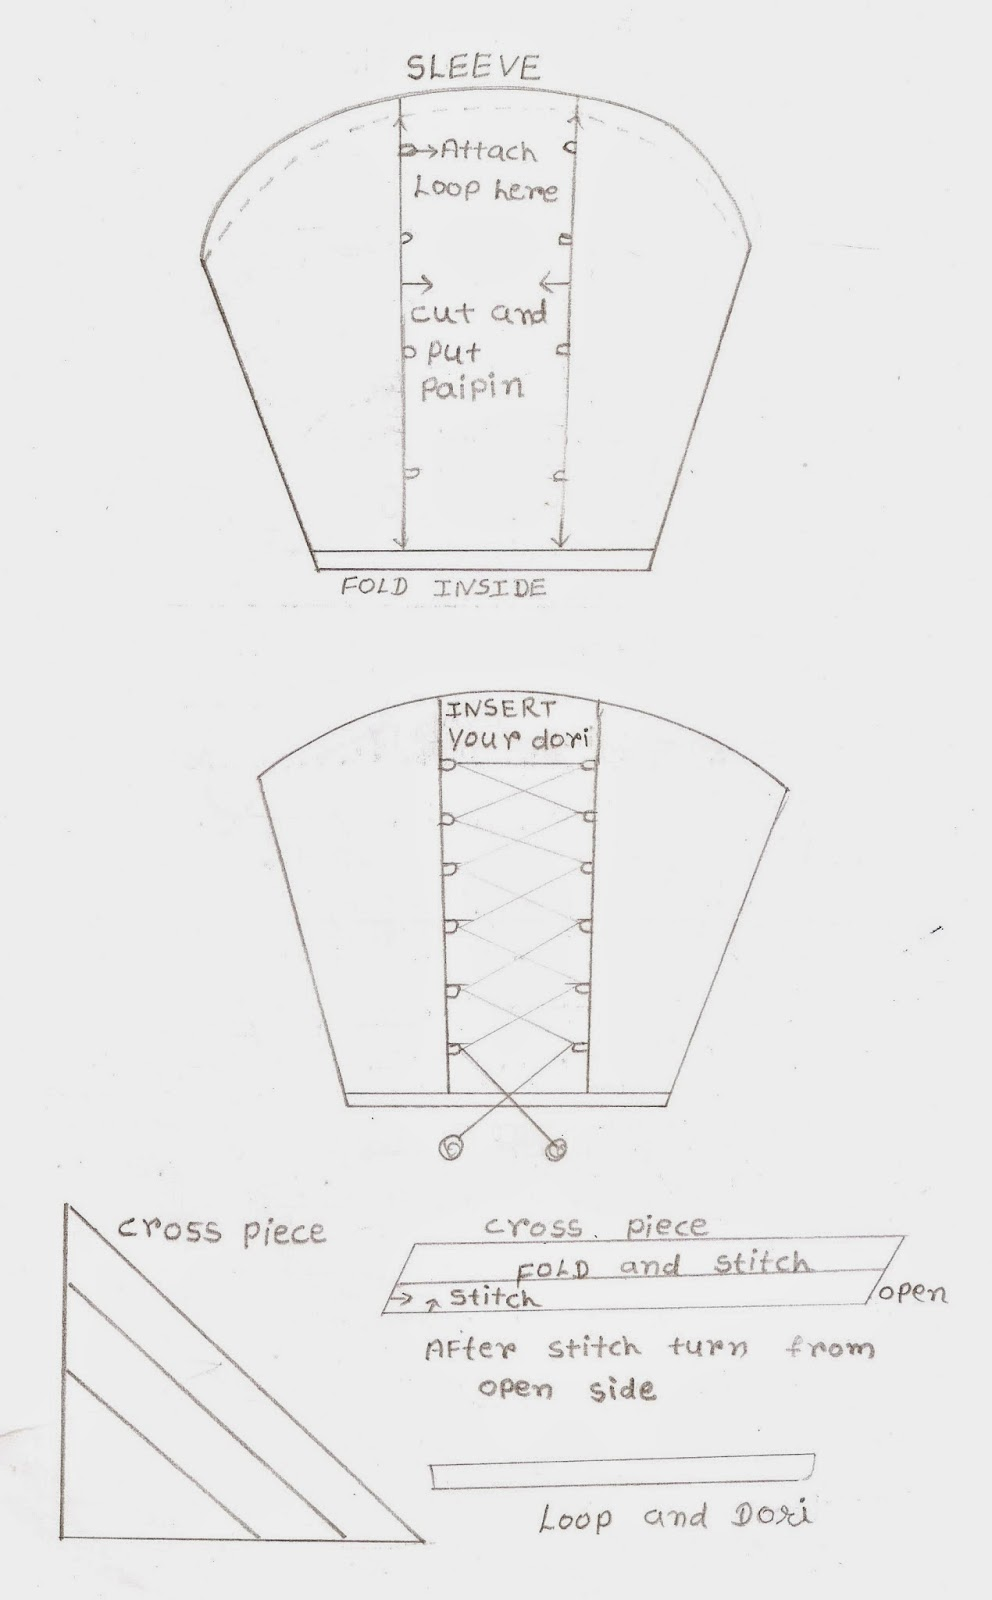 Cutting and stitching of Loops and dori sleeves